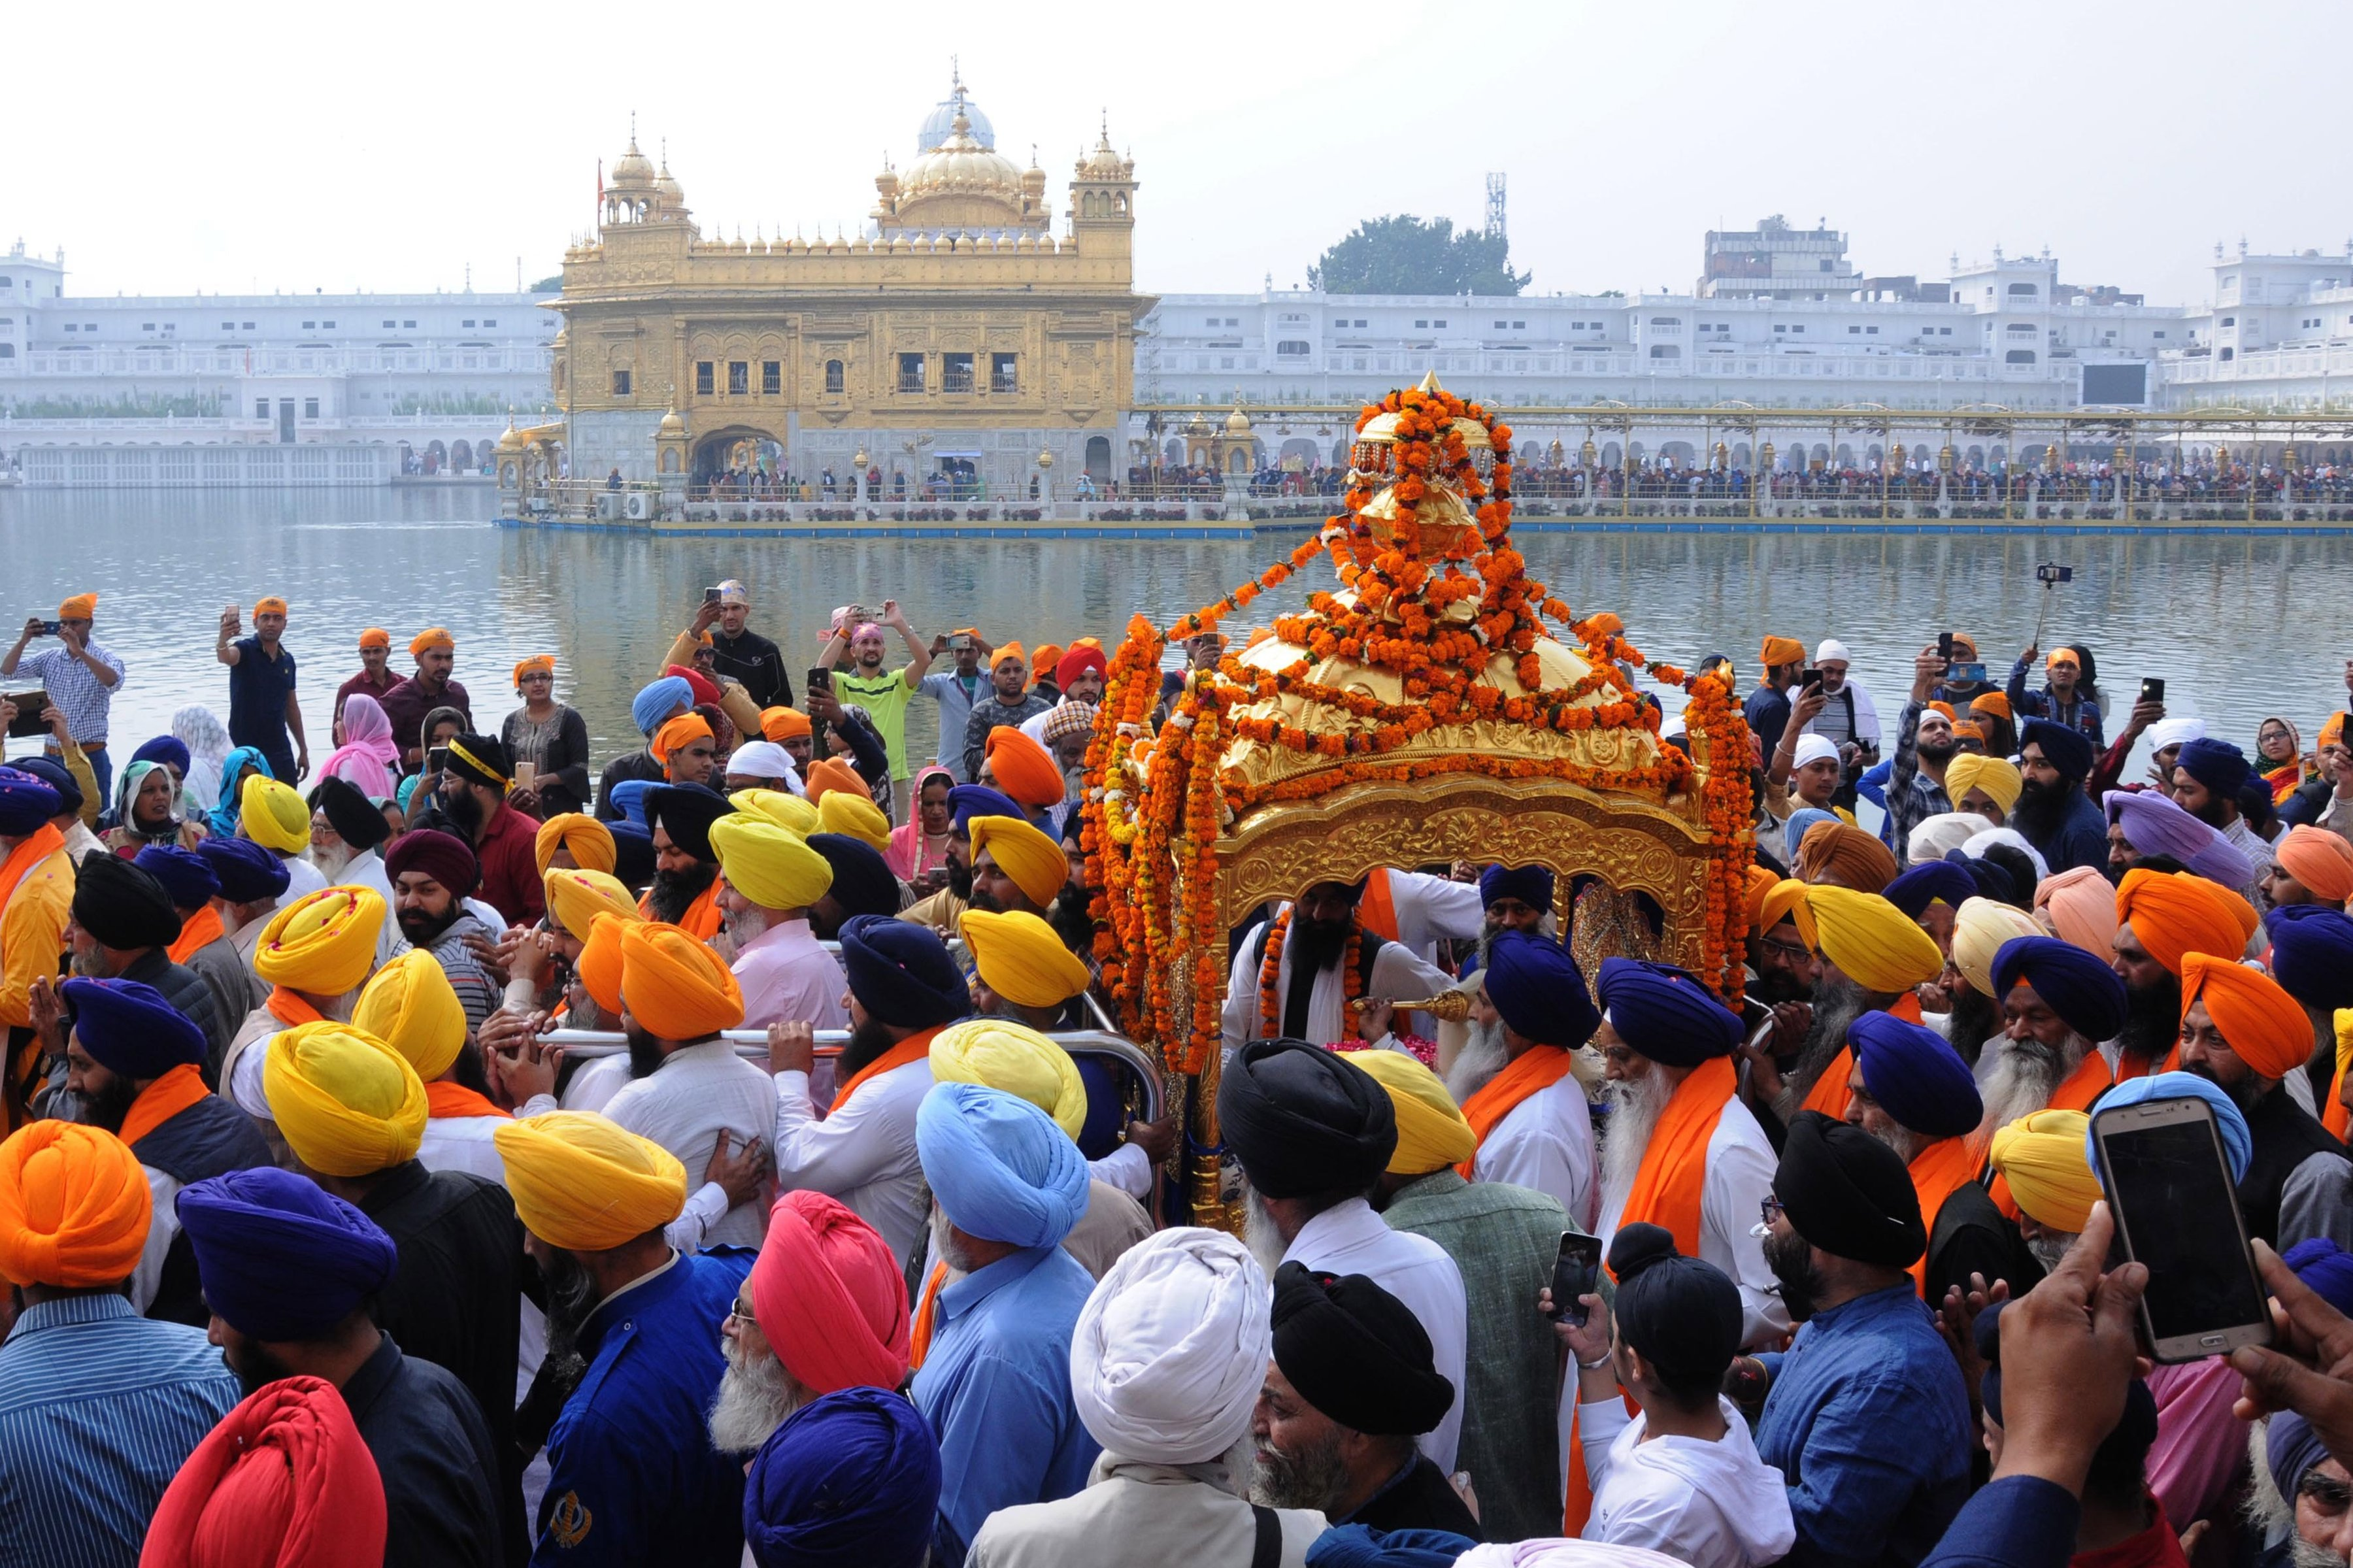 Sikh devotees carrying the Sri Guru Granth Sahib ji - the holy book of Sikh religion - in a hand-held, golden carriage